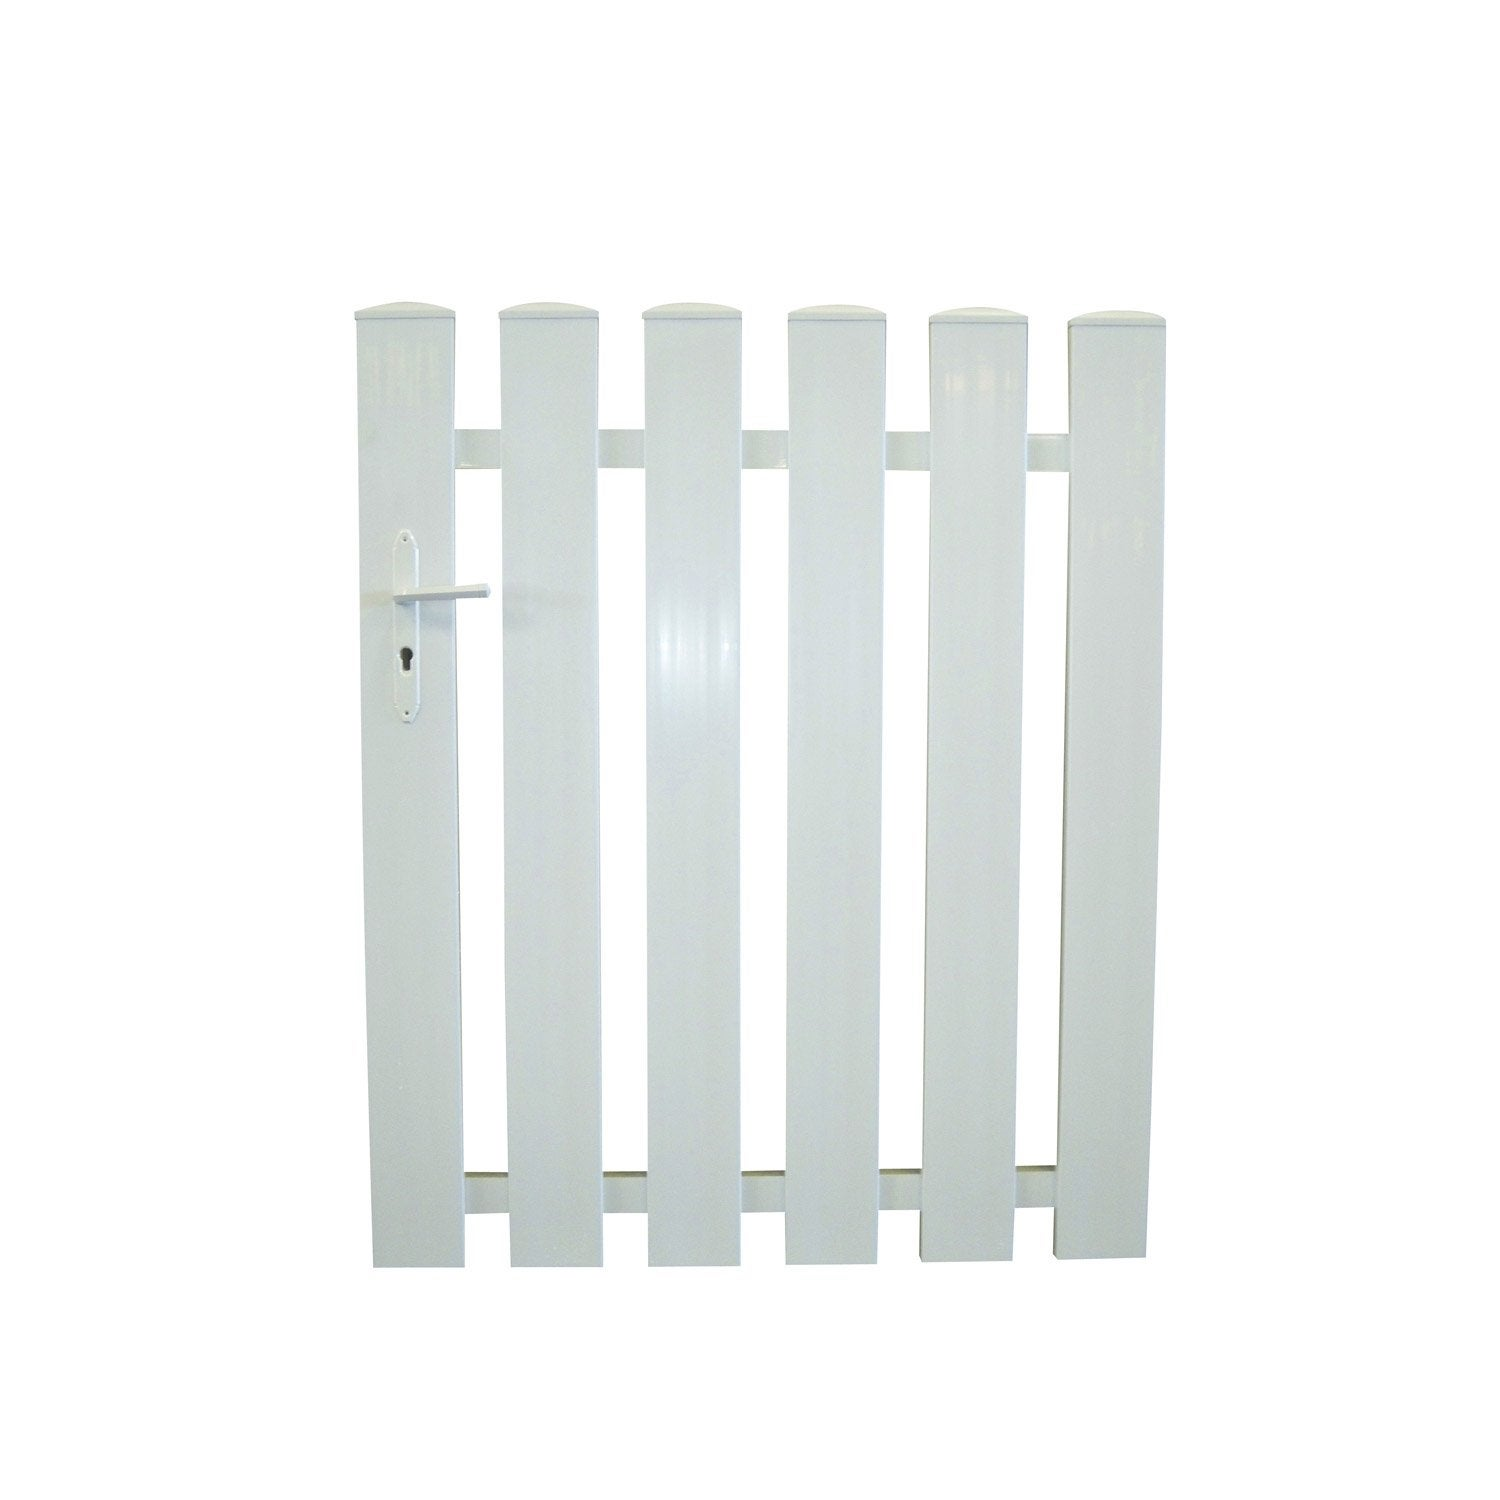 Portillon battant auray x cm blanc leroy for Portillon en bois de jardin